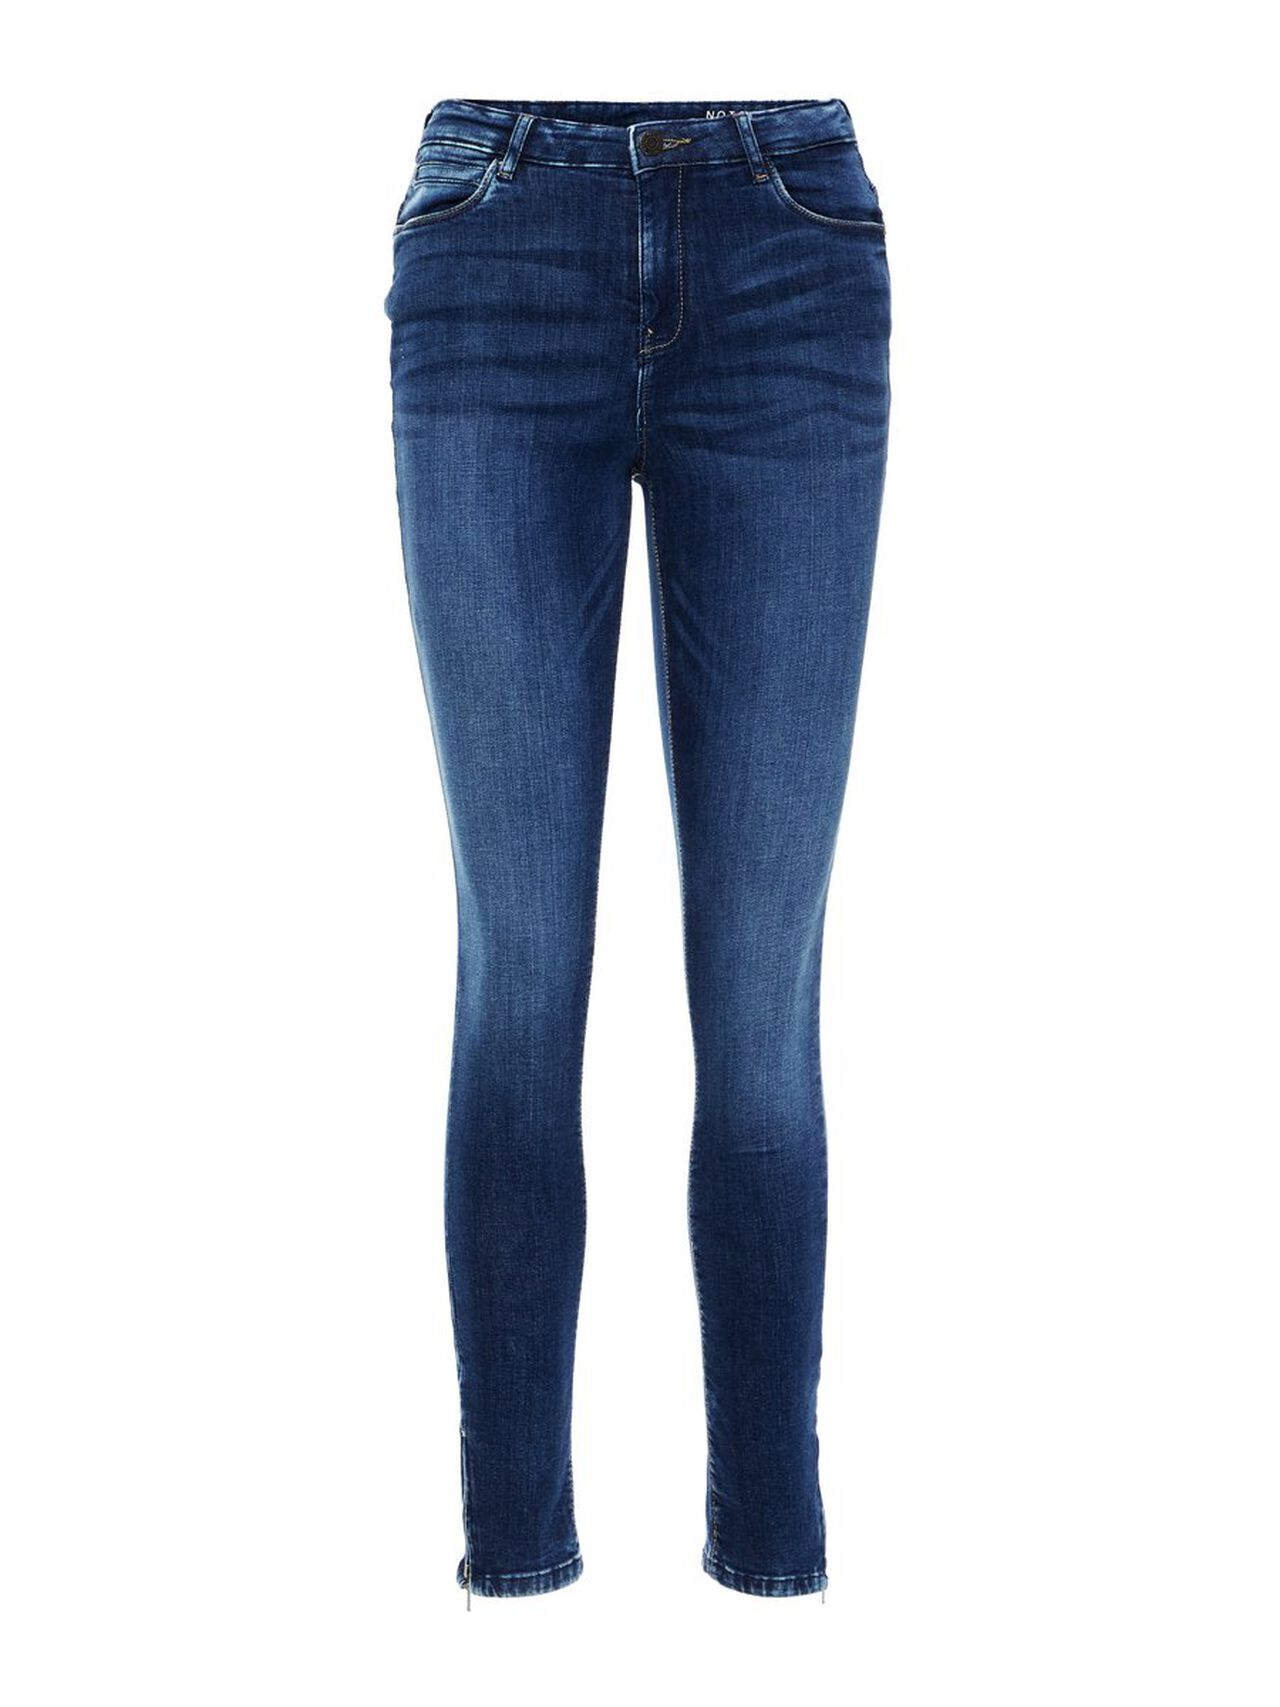 NOISY MAY High Waisted Ankle Slim Fit Jeans Women Blue